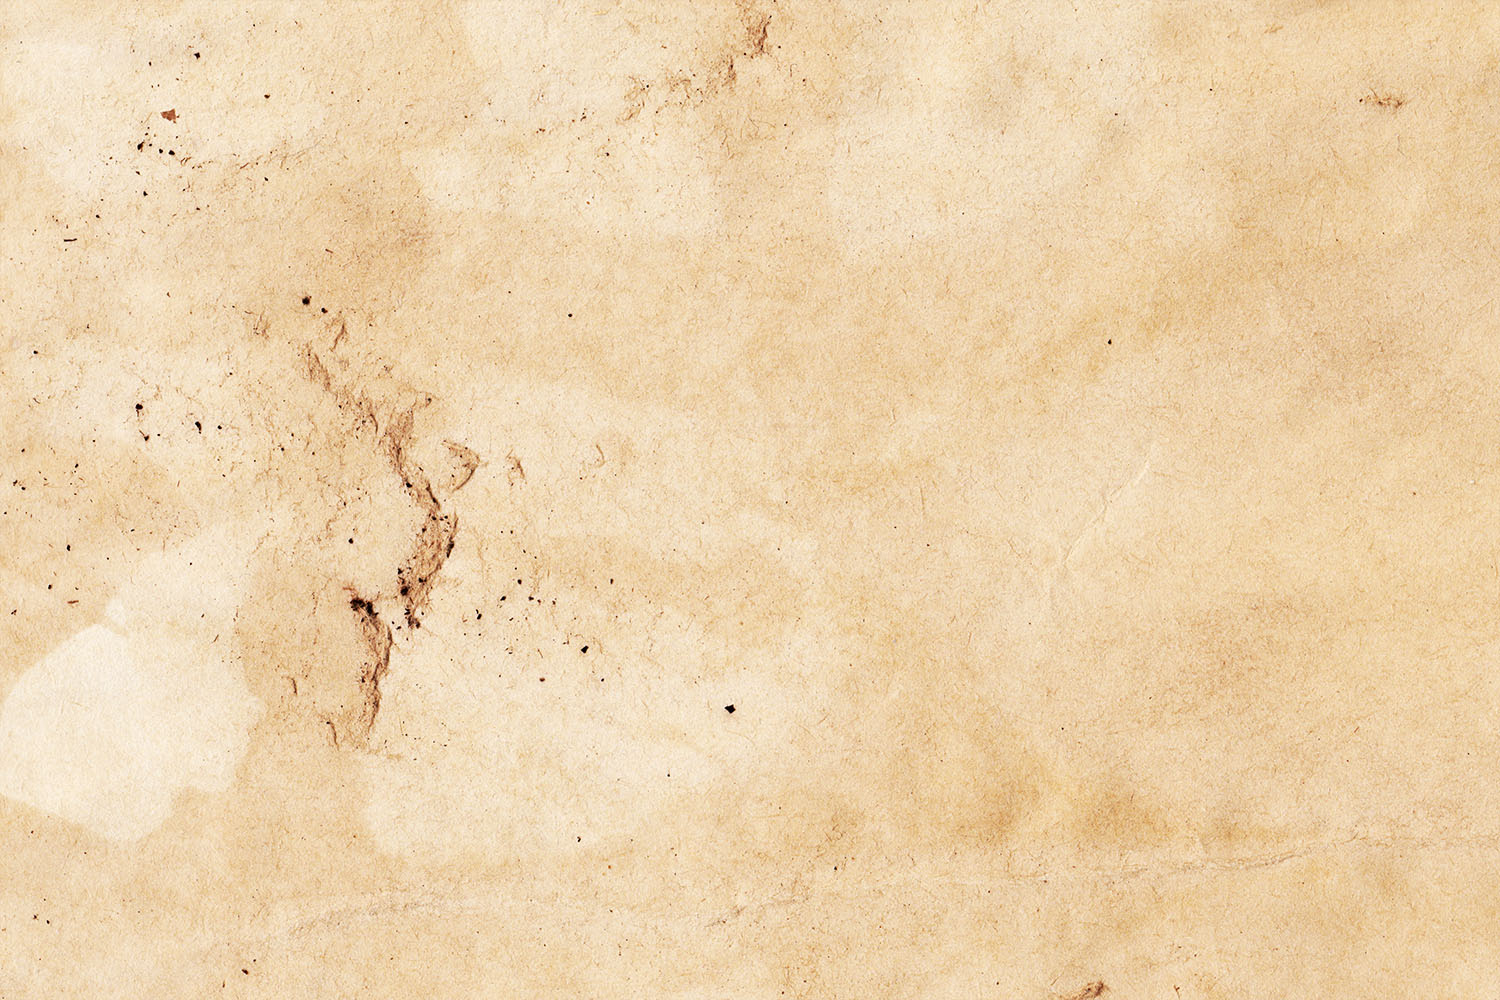 Handcrafted Vintage Paper Textures Vol. 04 example image 3